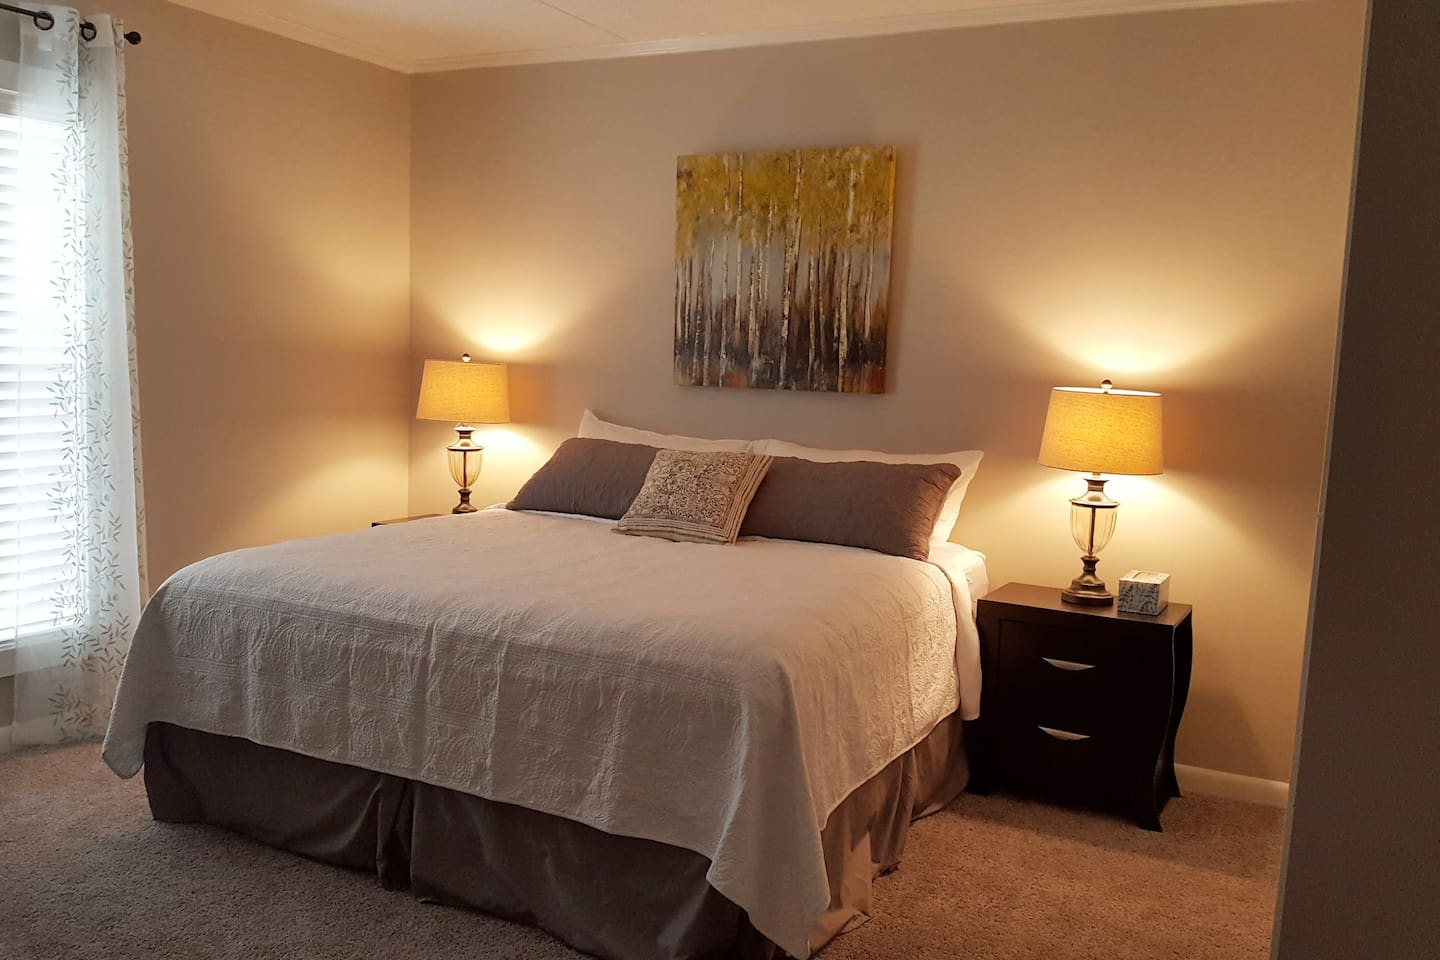 Comfortable king-size bed in bedroom